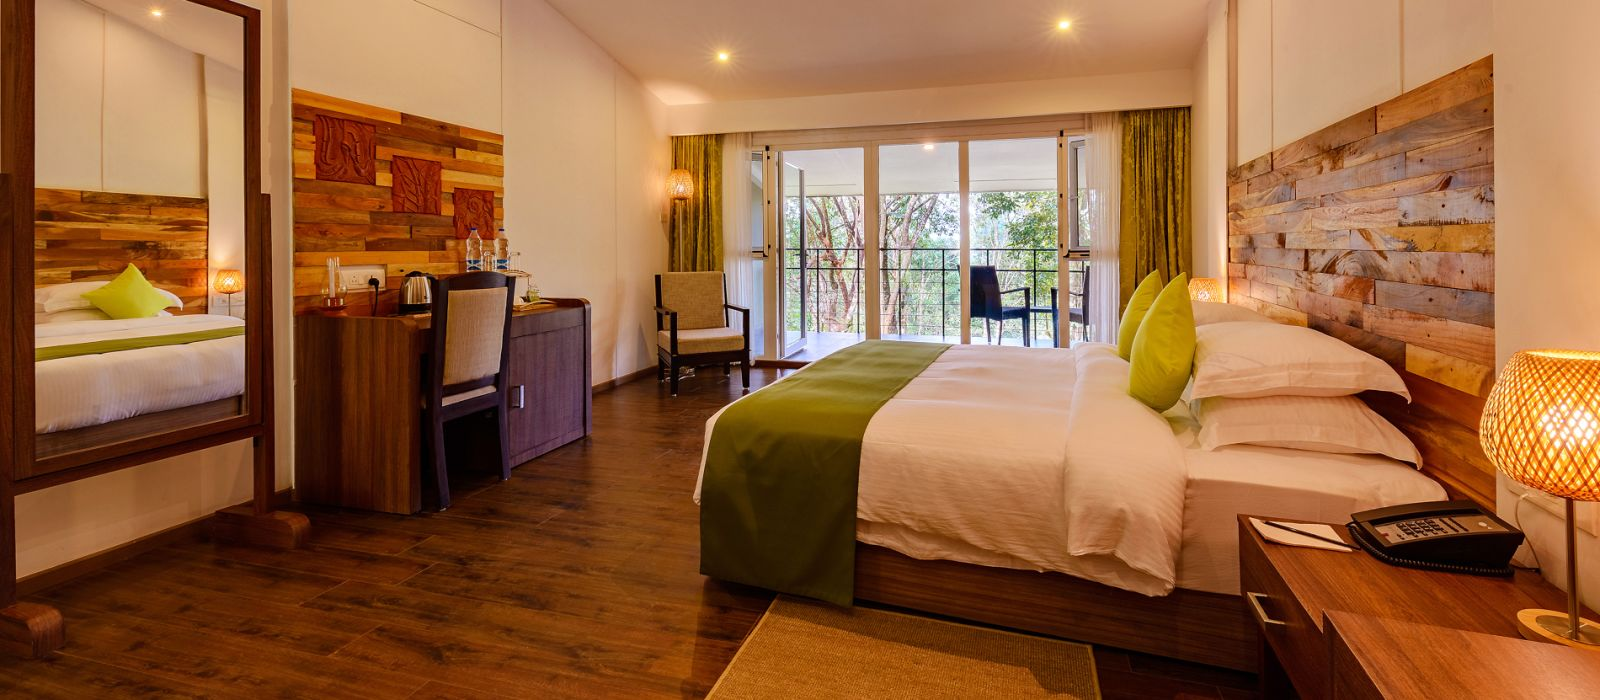 Hotel Wayanad Wild South India